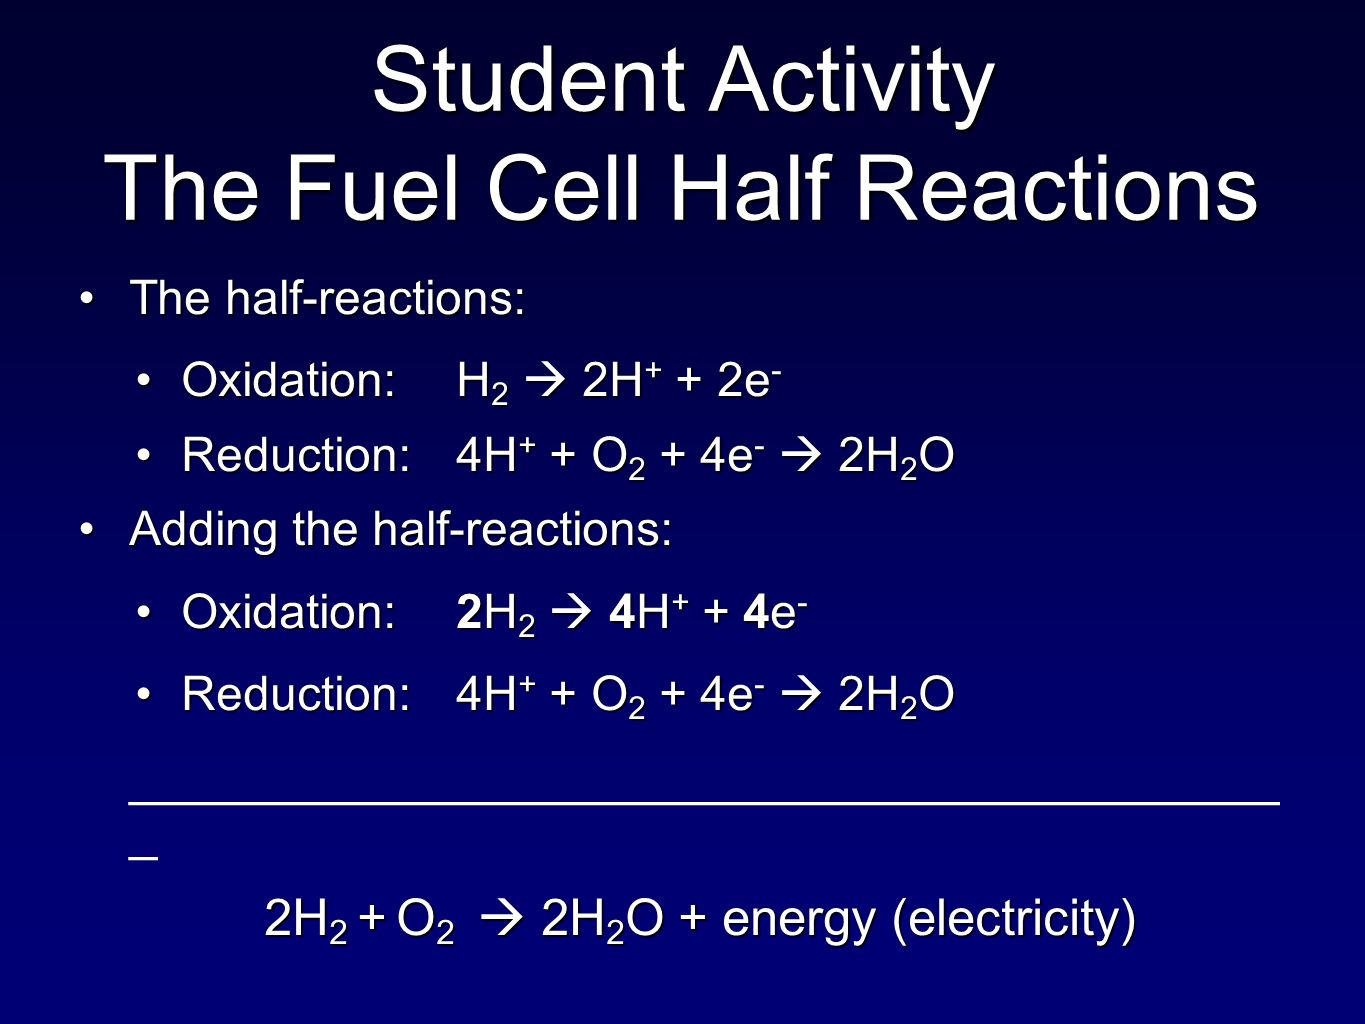 The half-reactions:The half-reactions: Oxidation:H 2  2H + + 2e -Oxidation:H 2  2H + + 2e - Reduction:4H + + O 2 + 4e -  2H 2 OReduction:4H + + O 2 + 4e -  2H 2 O Adding the half-reactions:Adding the half-reactions: Oxidation:2H 2  4H + + 4e -Oxidation:2H 2  4H + + 4e - Reduction:4H + + O 2 + 4e -  2H 2 OReduction:4H + + O 2 + 4e -  2H 2 O _________________________________________ _ 2H 2 + O 2  2H 2 O + energy (electricity) Student Activity The Fuel Cell Half Reactions